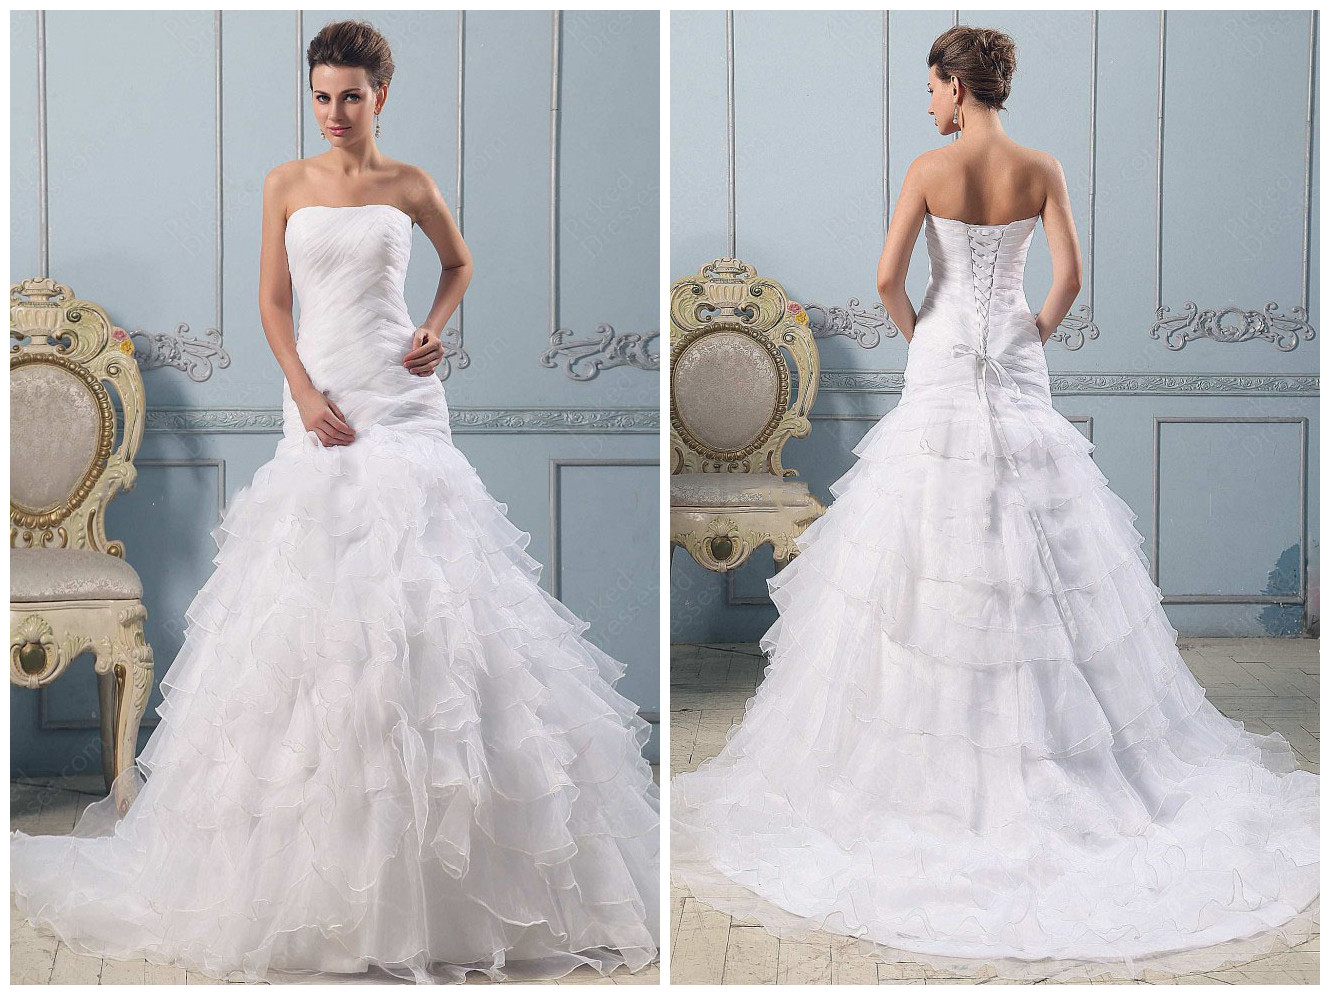 Strapless Wedding Dresses Ball Gown Lace | HD Wallpaper